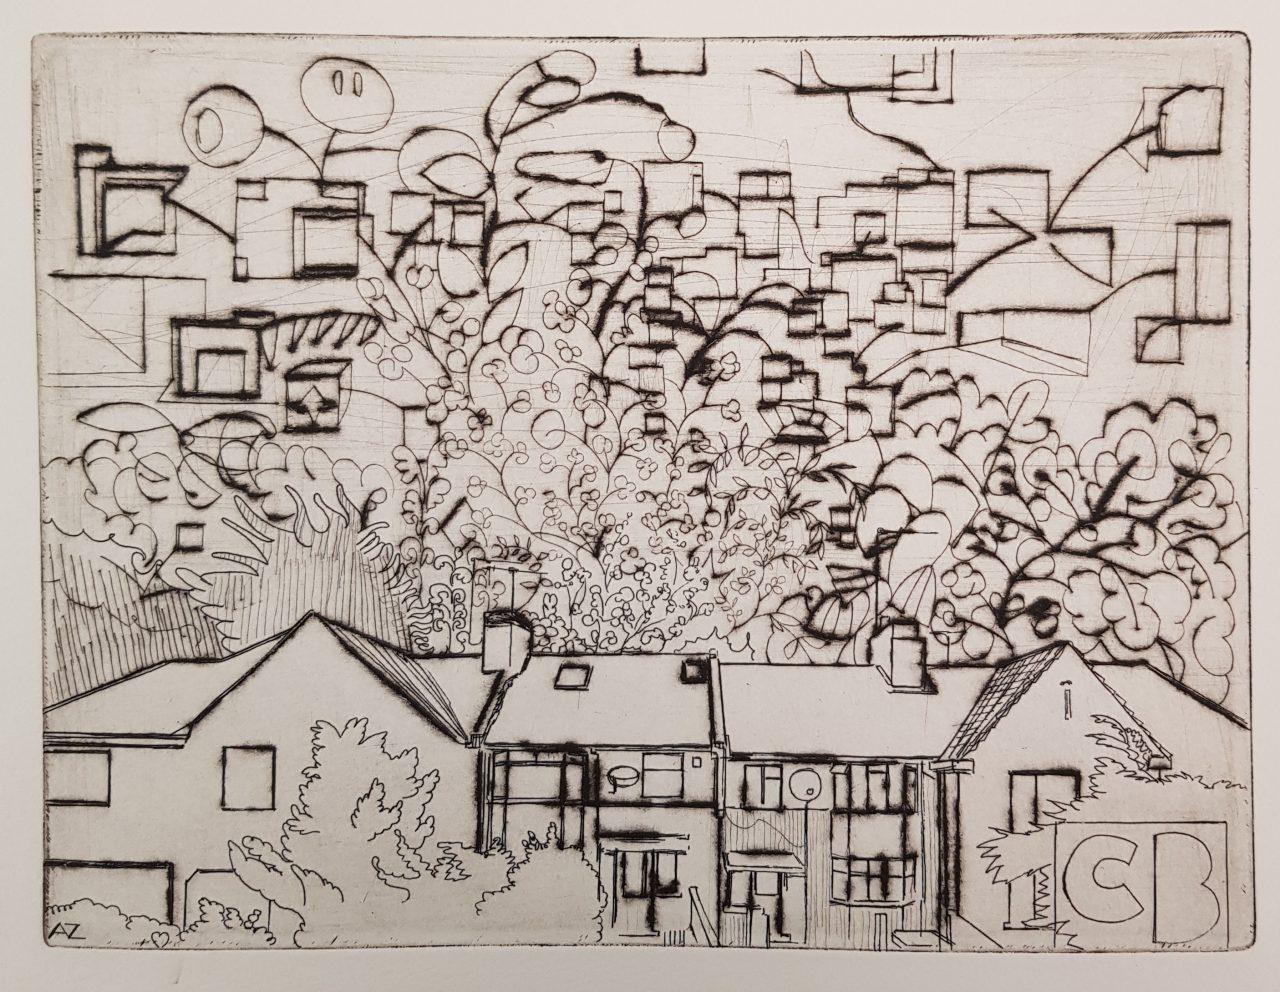 Houses in South East London, 2019. Etching/drypoint, 15x20cm